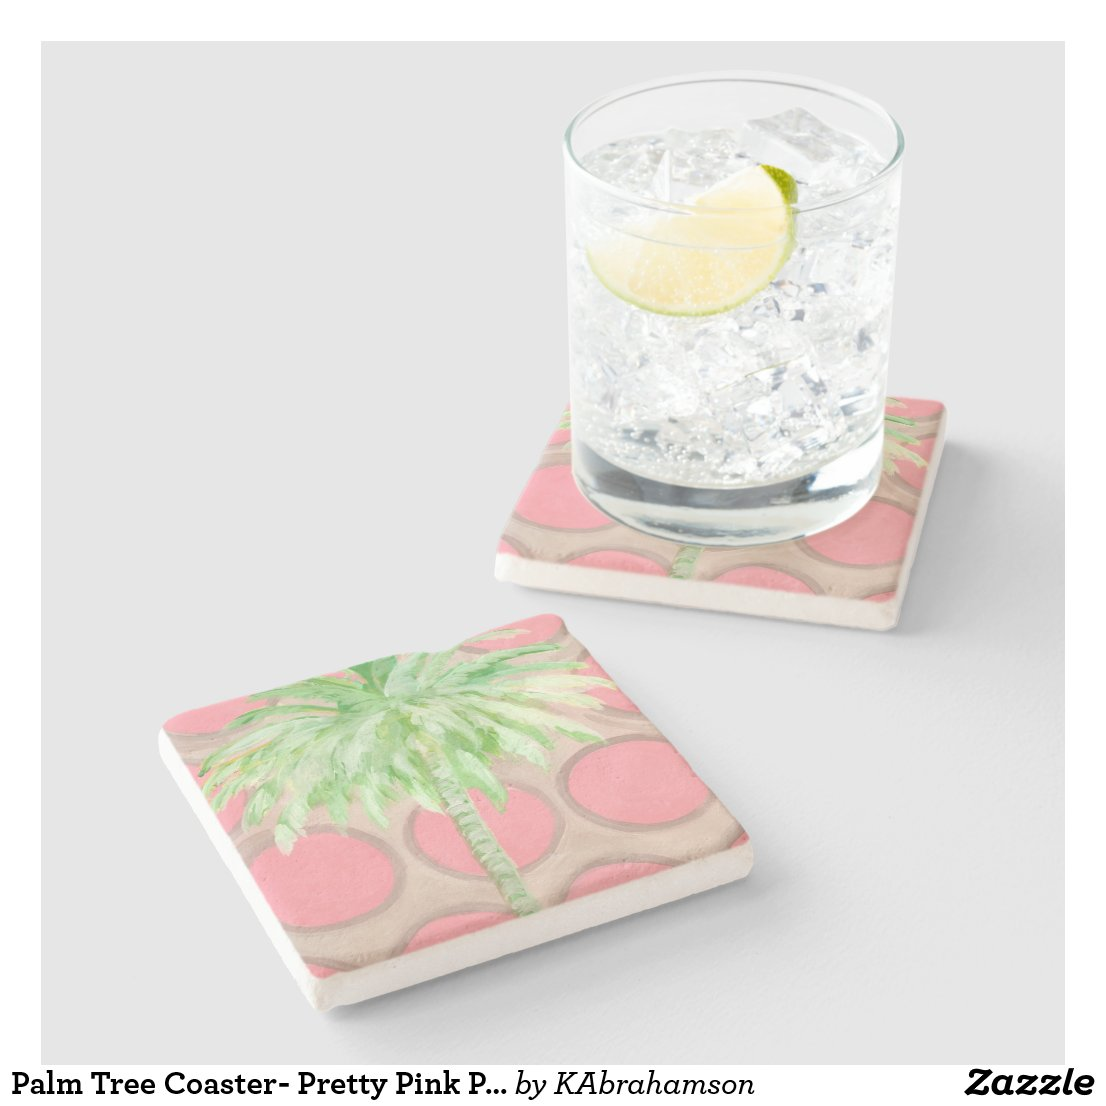 Palm Tree Coaster- Pretty Pink Polka Dots Stone Coaster